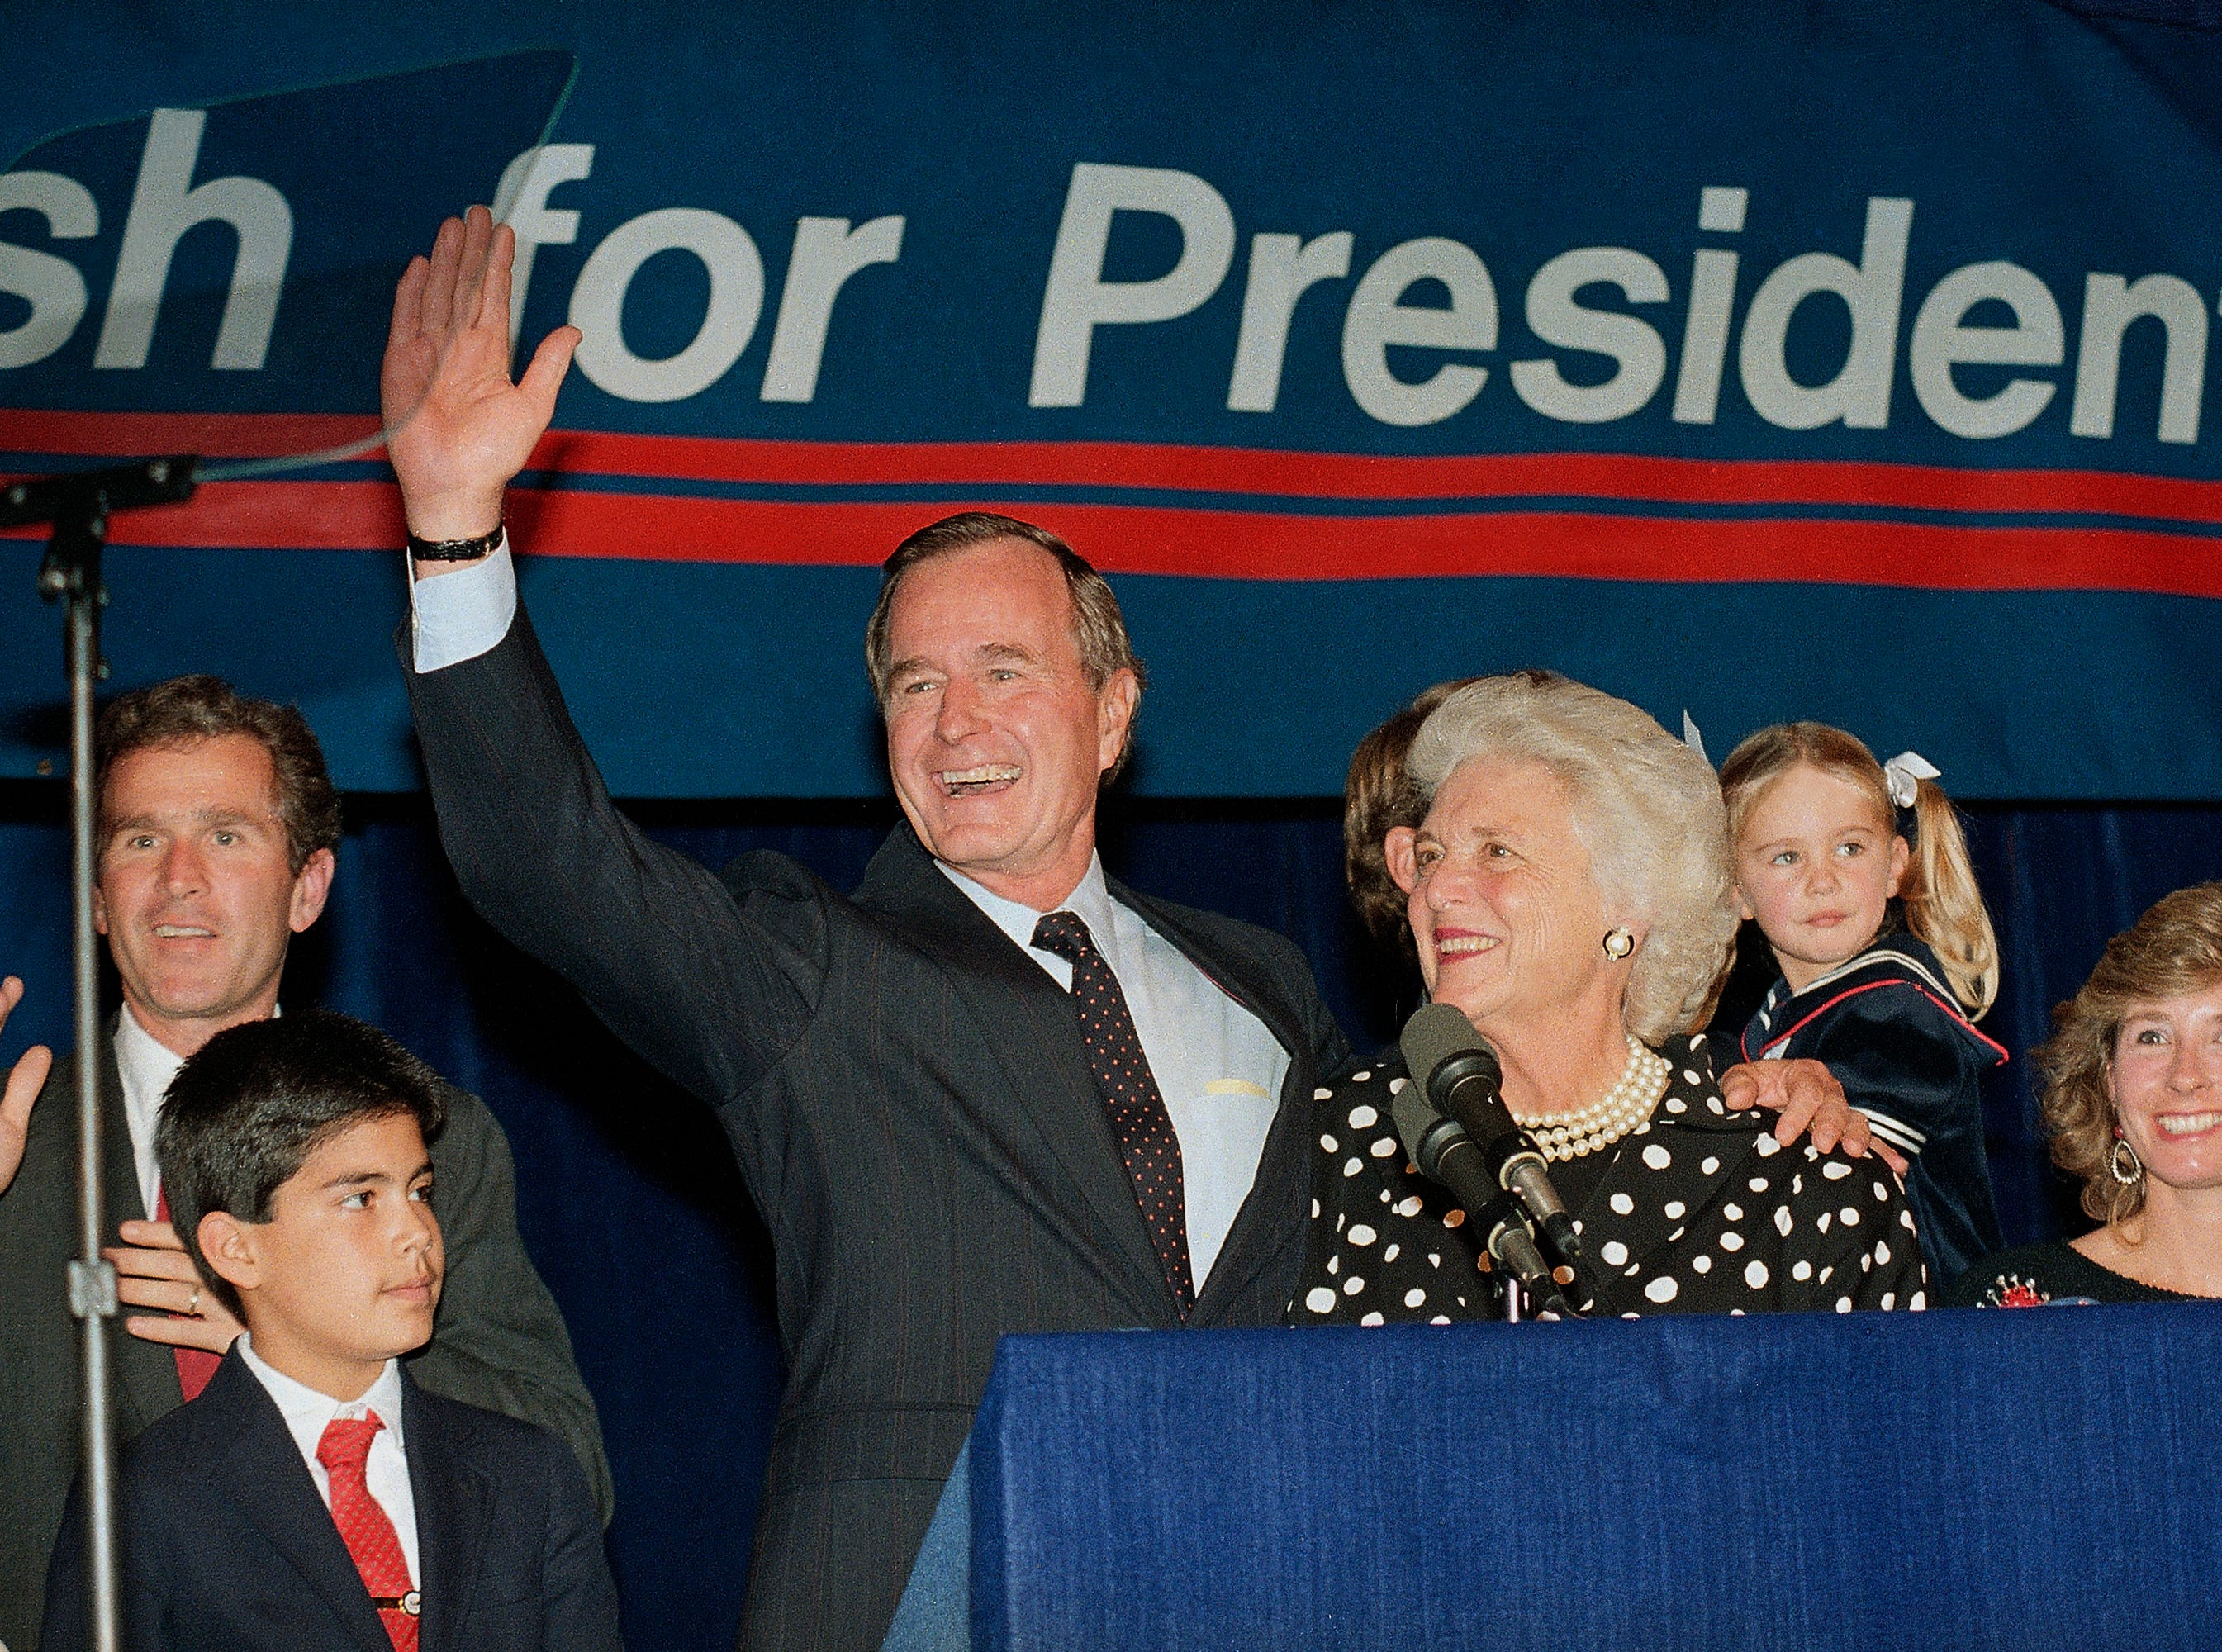 In this Oct. 12, 1987, file photo, Vice President George H.W. Bush and his wife, Barbara, with their son George W. Bush, far left, wave to supporters who turned out in Houston to hear him announce he was a candidate for the Republican nomination for president of the United States.